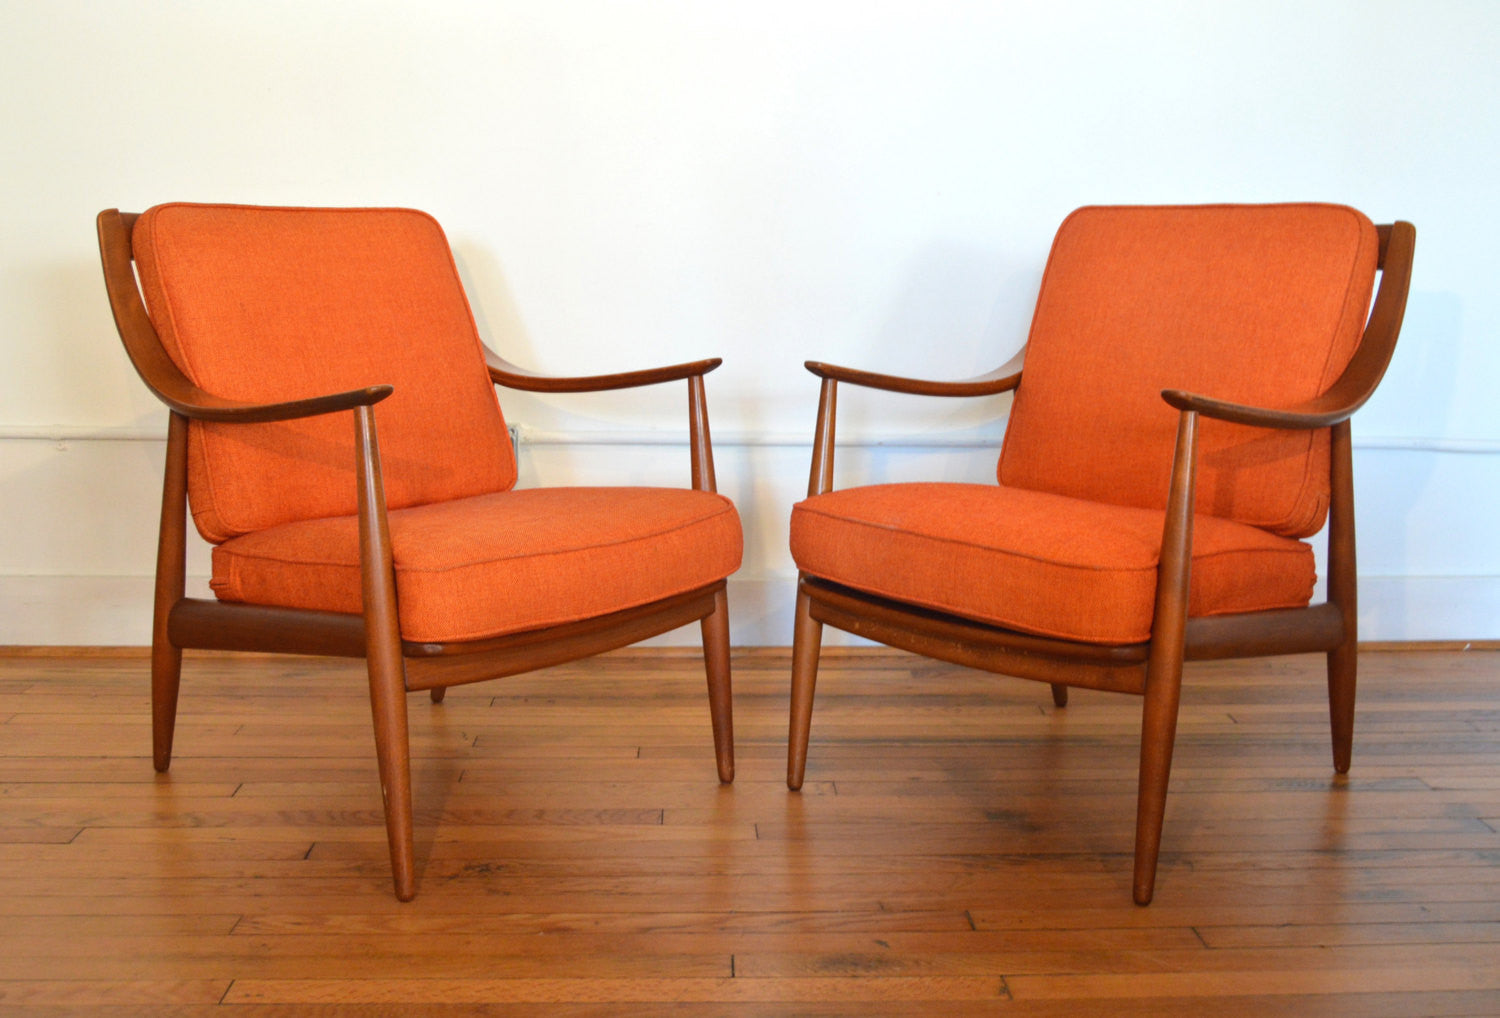 Pair Of Danish Modern Lounge Chairs By Peter Hvidt And Orla Mølgaard  Nielsen For France U0026 Daverkosen